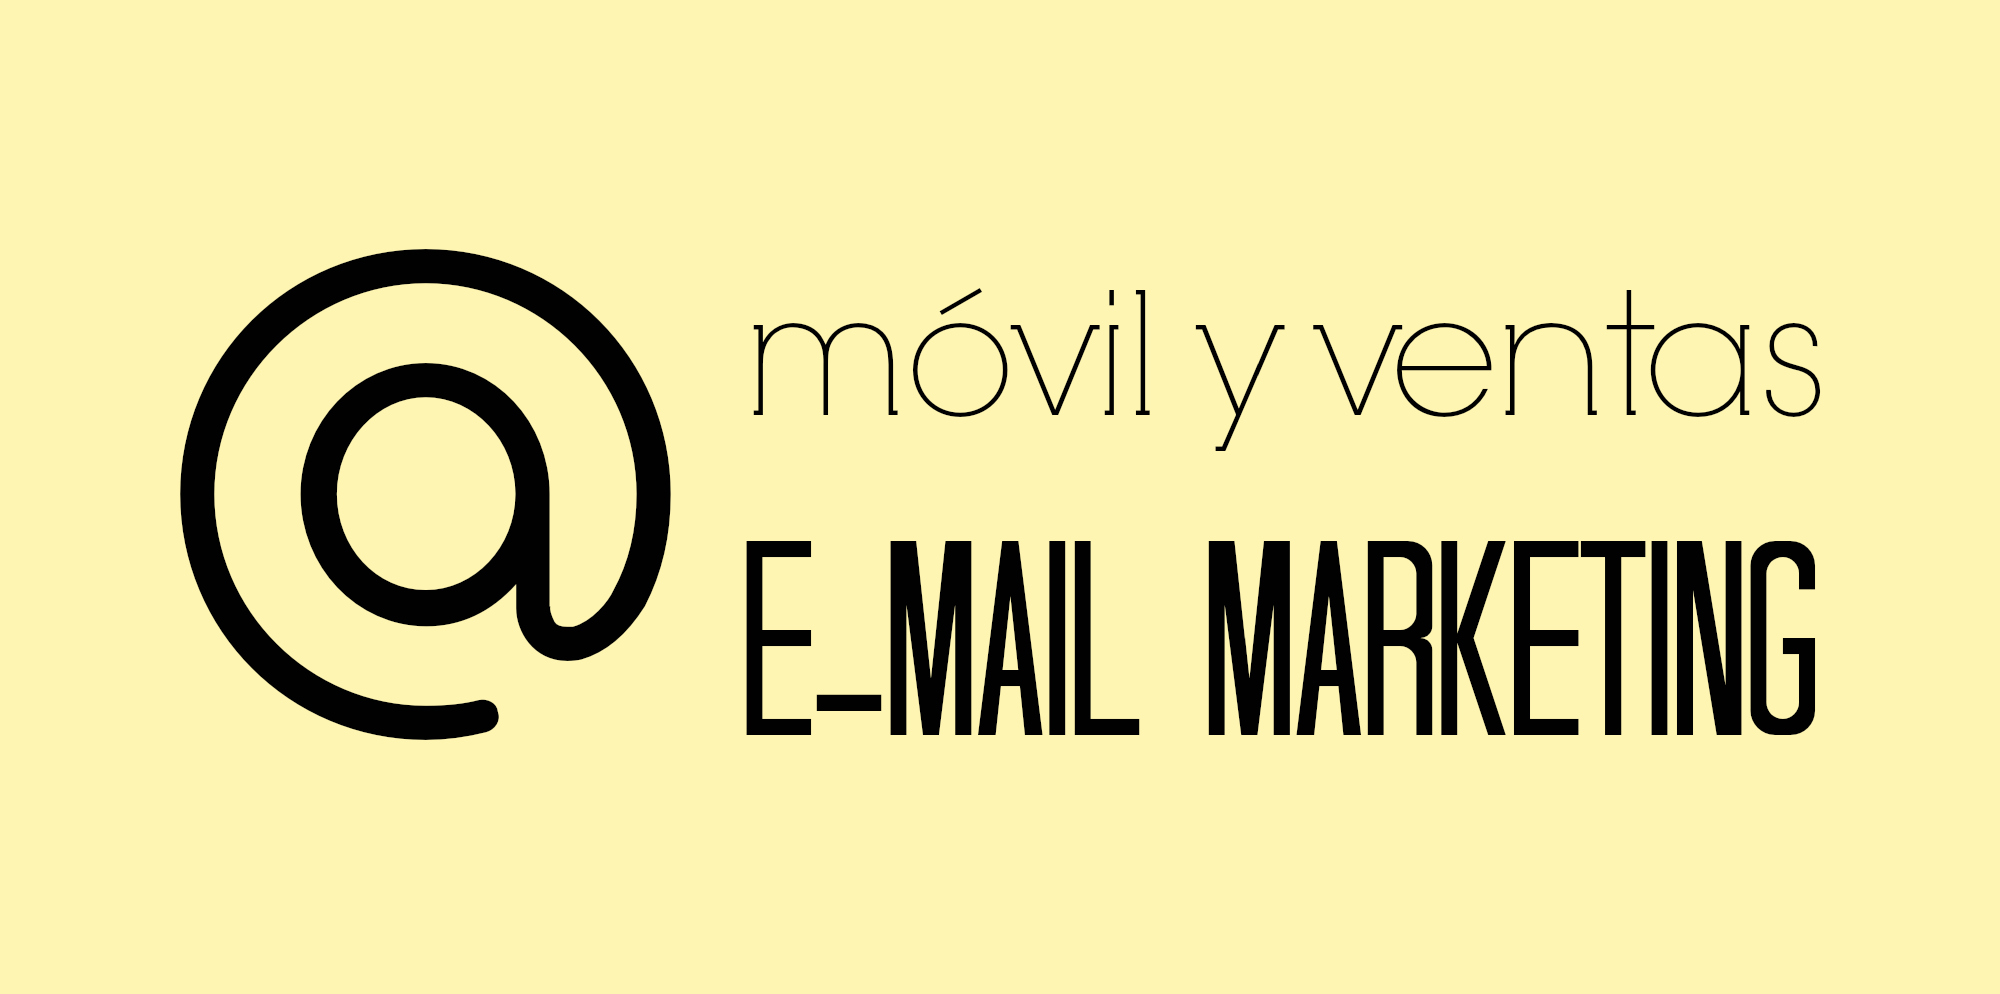 Móvil y ventas - Email Marketing